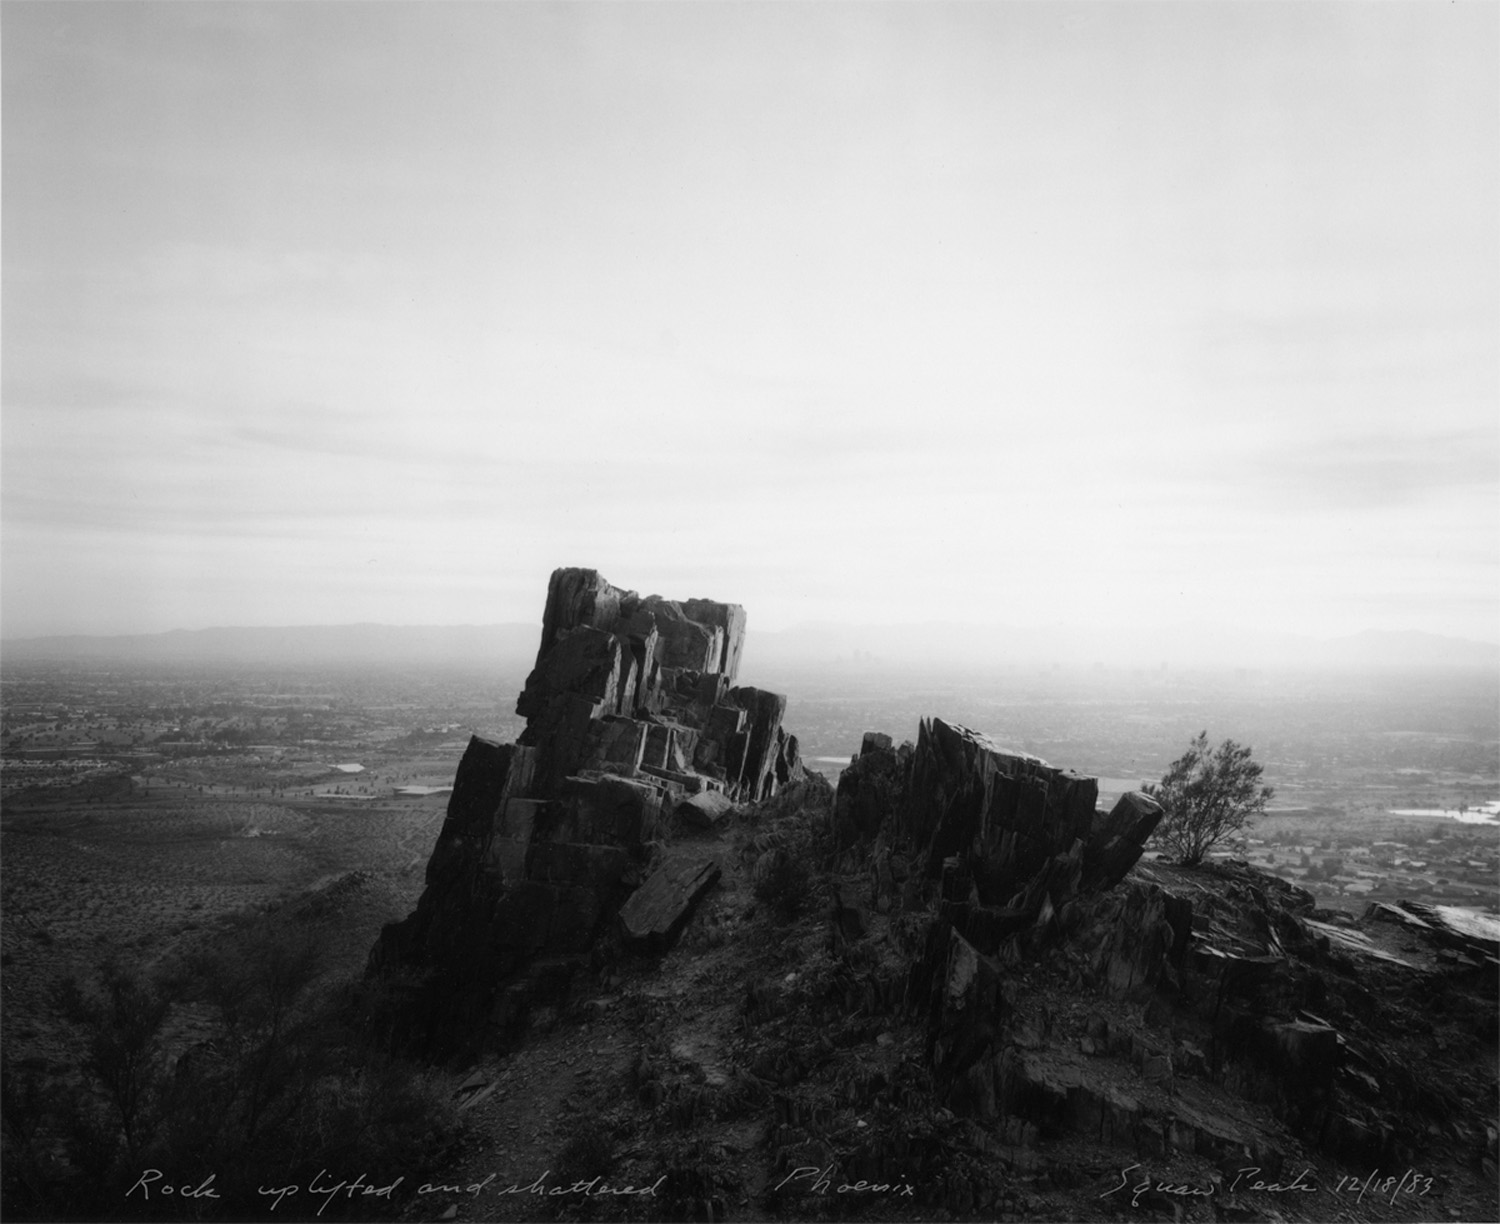 Rock uplifted and shattered, Phoenix, Squaw Peak, 1983